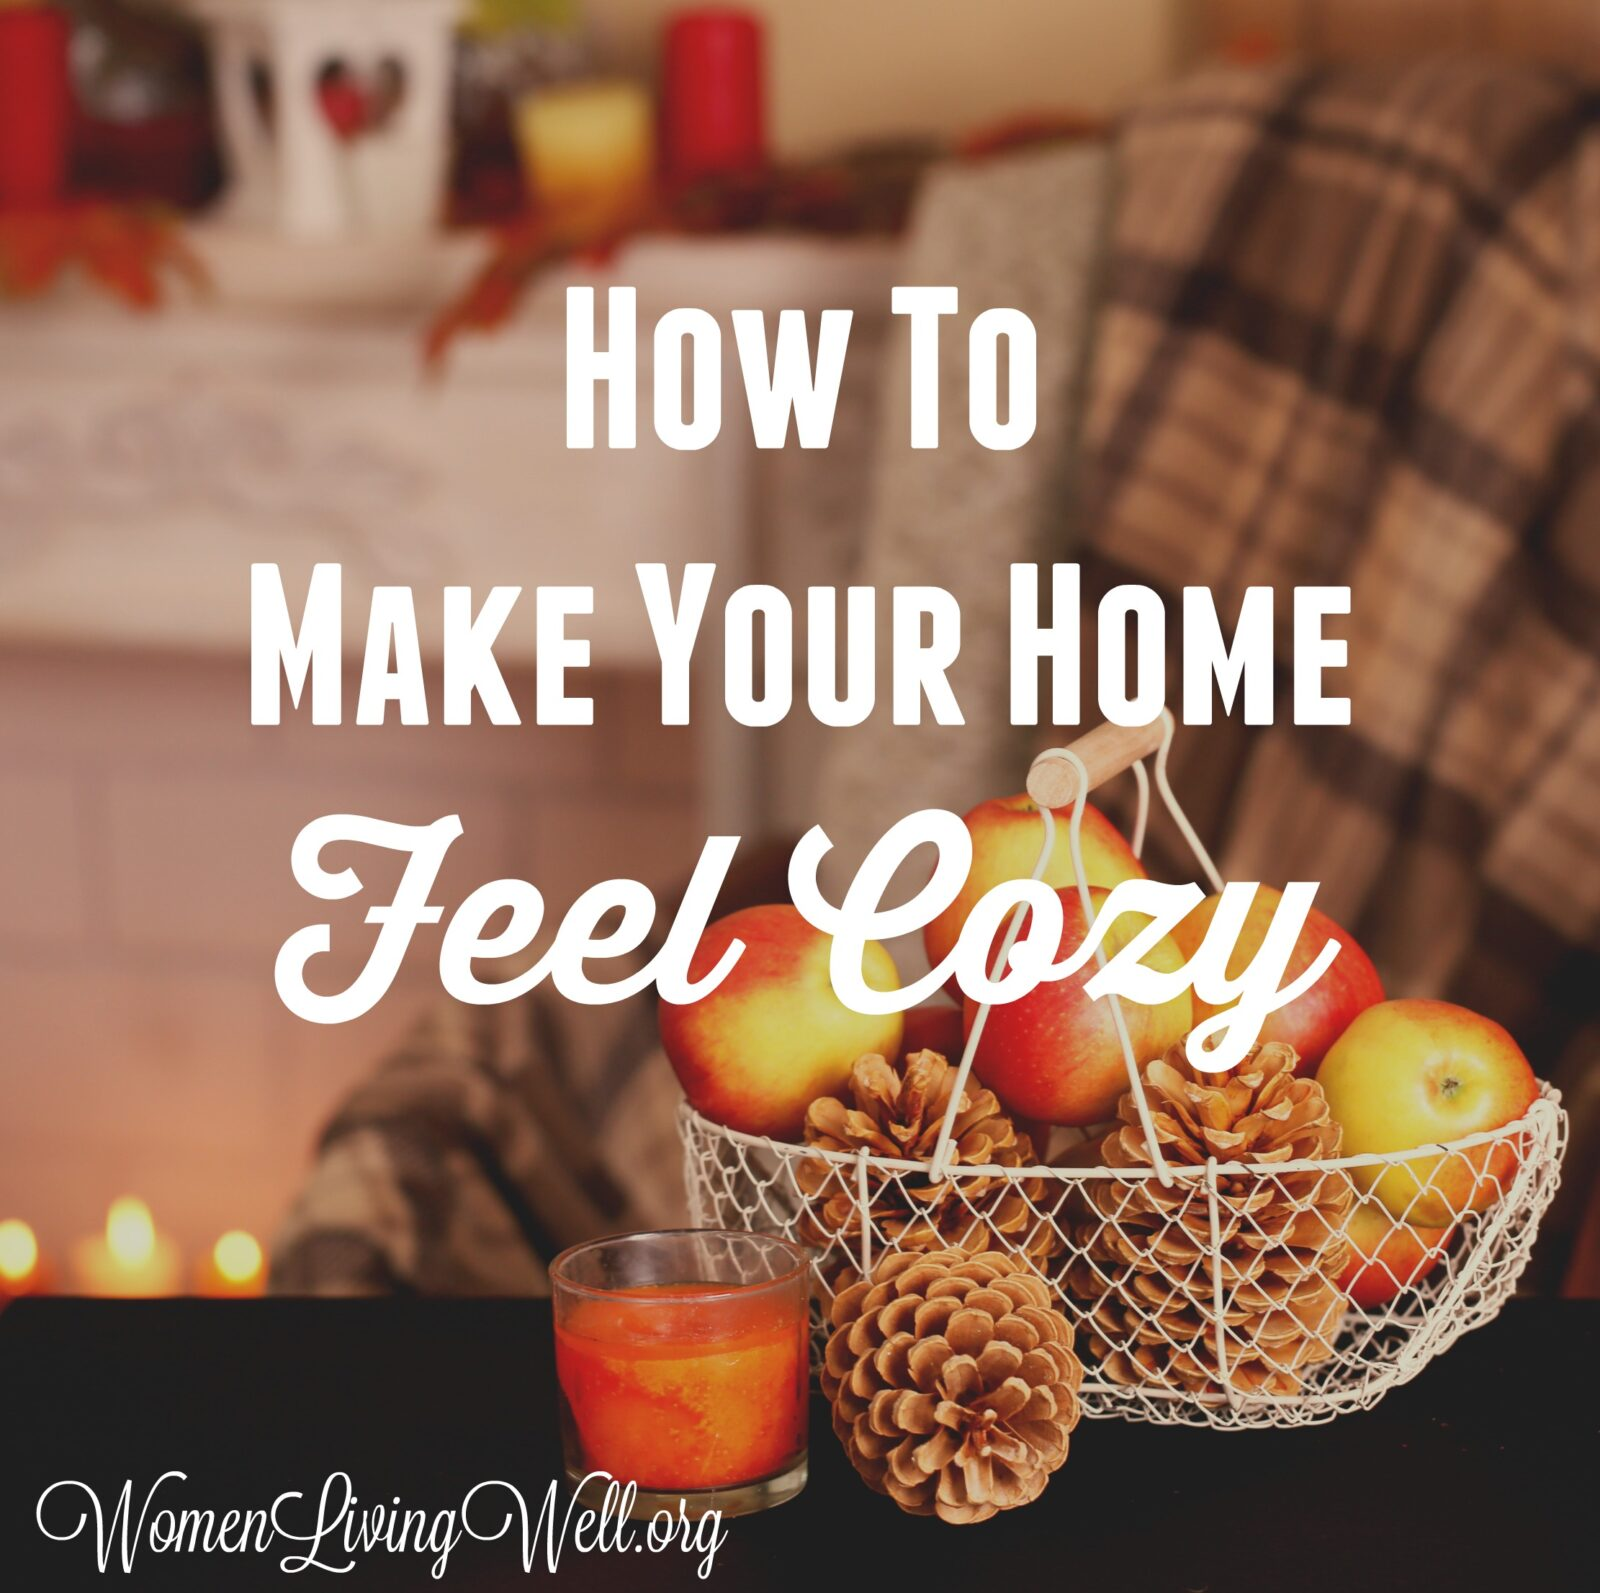 How To Make Your Home Feel Cozy Women Living Well